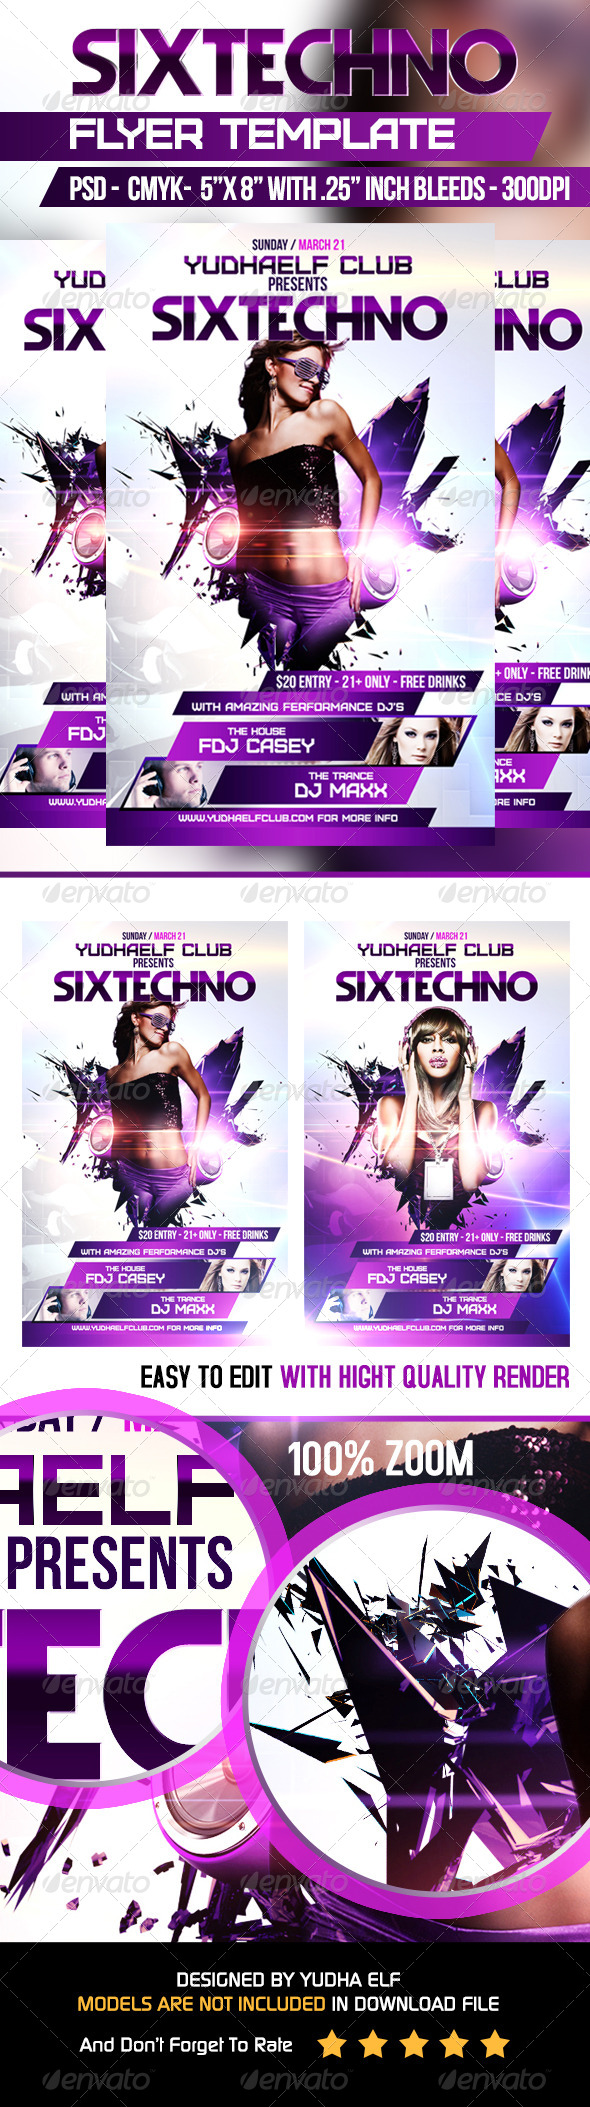 GraphicRiver SIxtechno Flyer Template 7035114